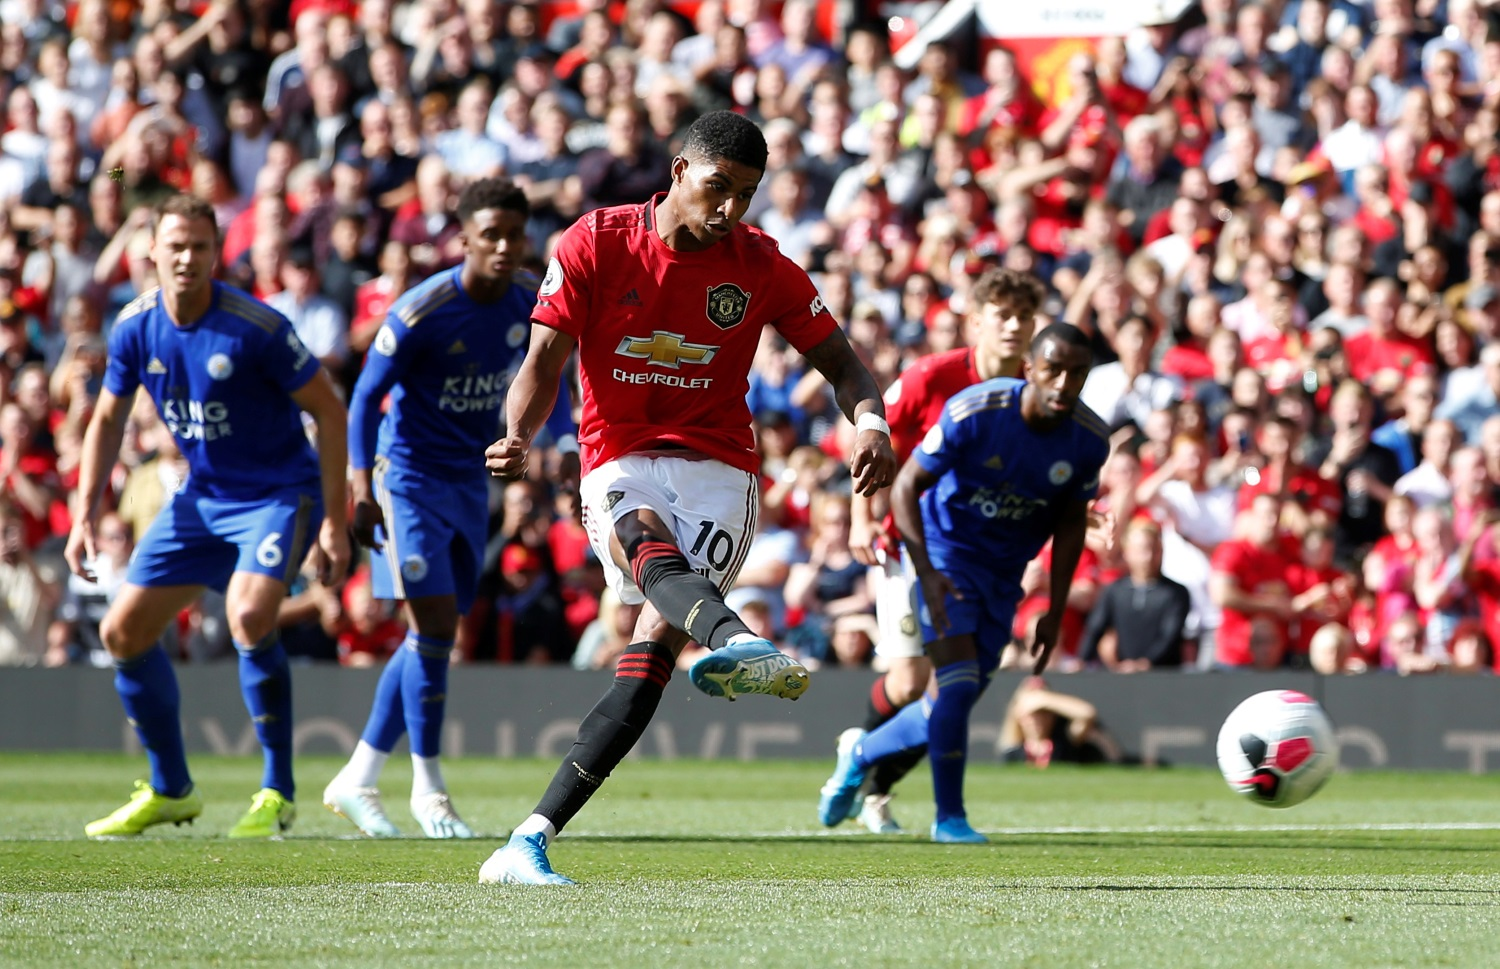 Manchester United 1-0 Leicester City